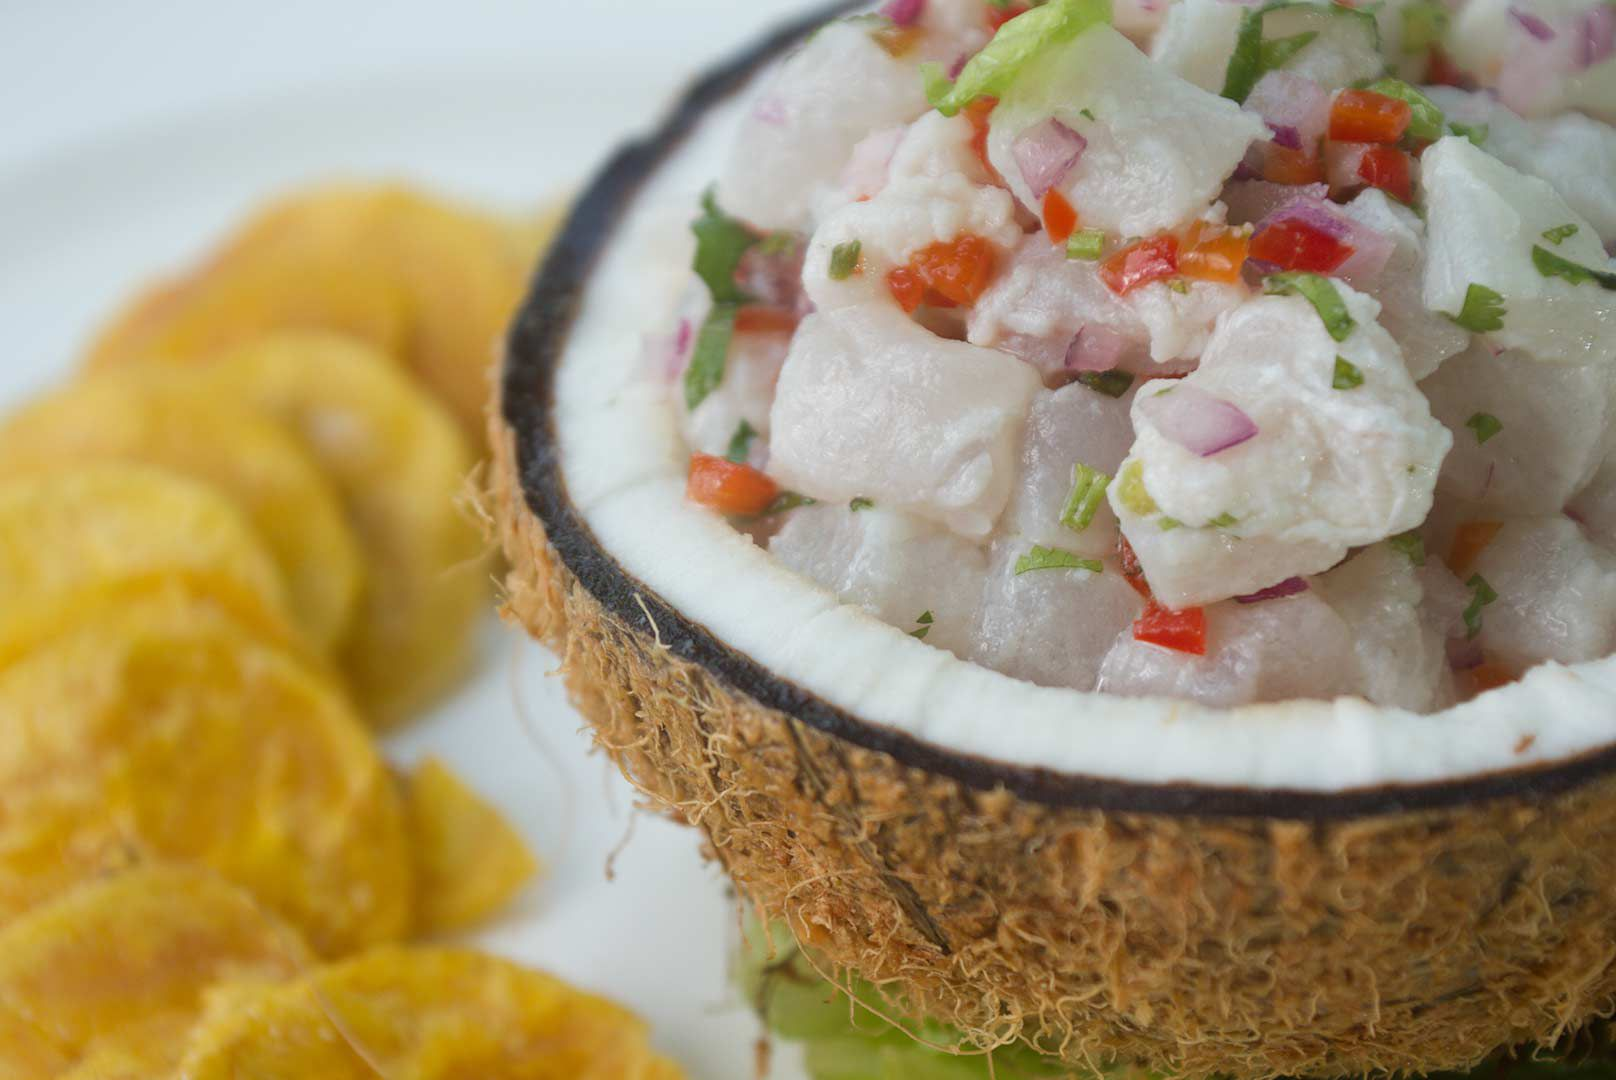 Ceviche in a coconut shell with plantain chips